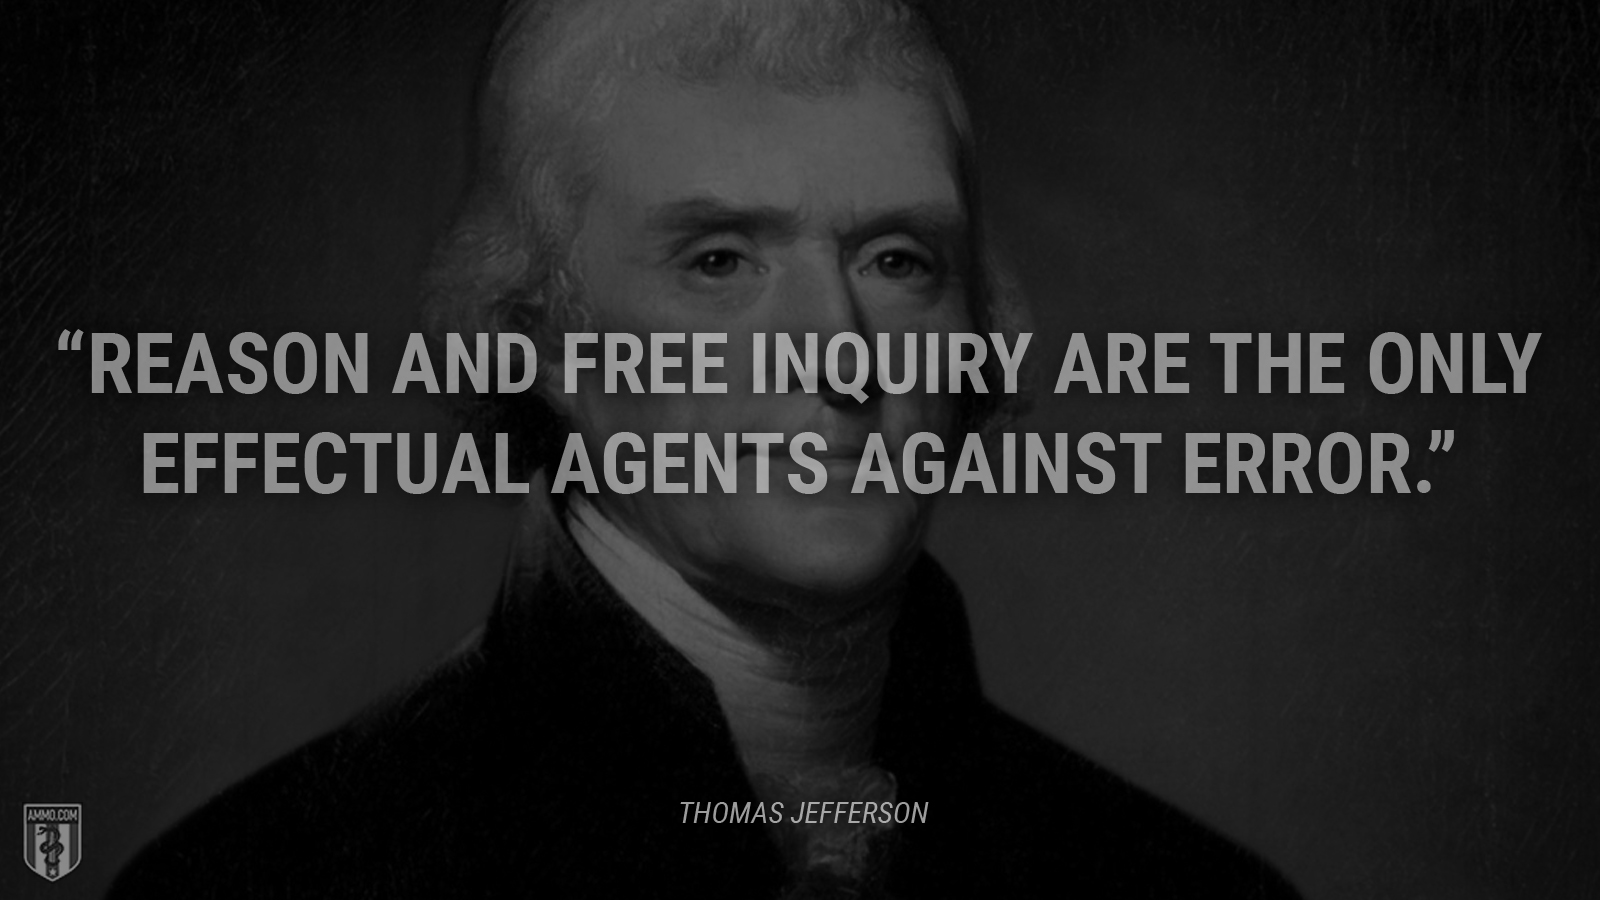 """Reason and free inquiry are the only effectual agents against error."" - Thomas Jefferson"